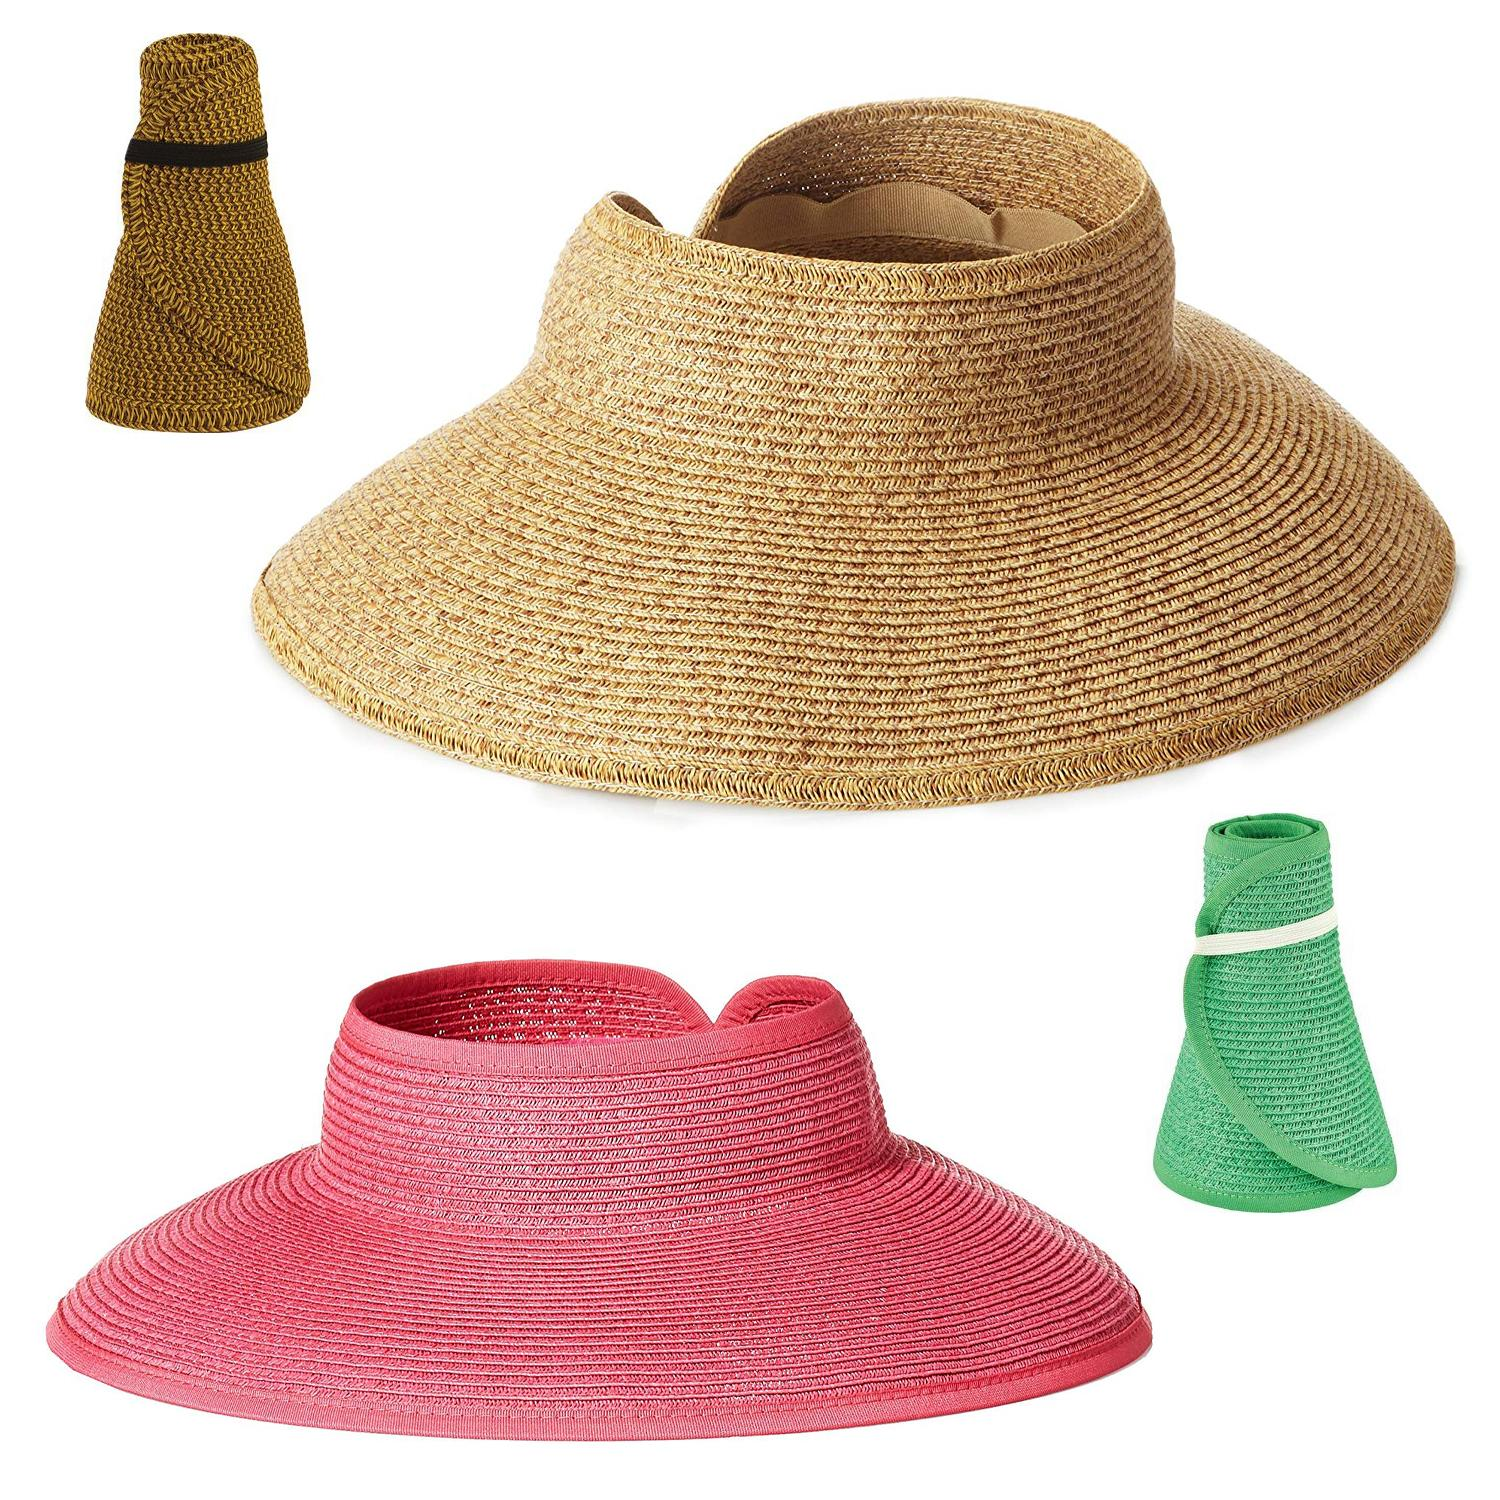 71de30b61 Hats You Can Pack in Your Luggage